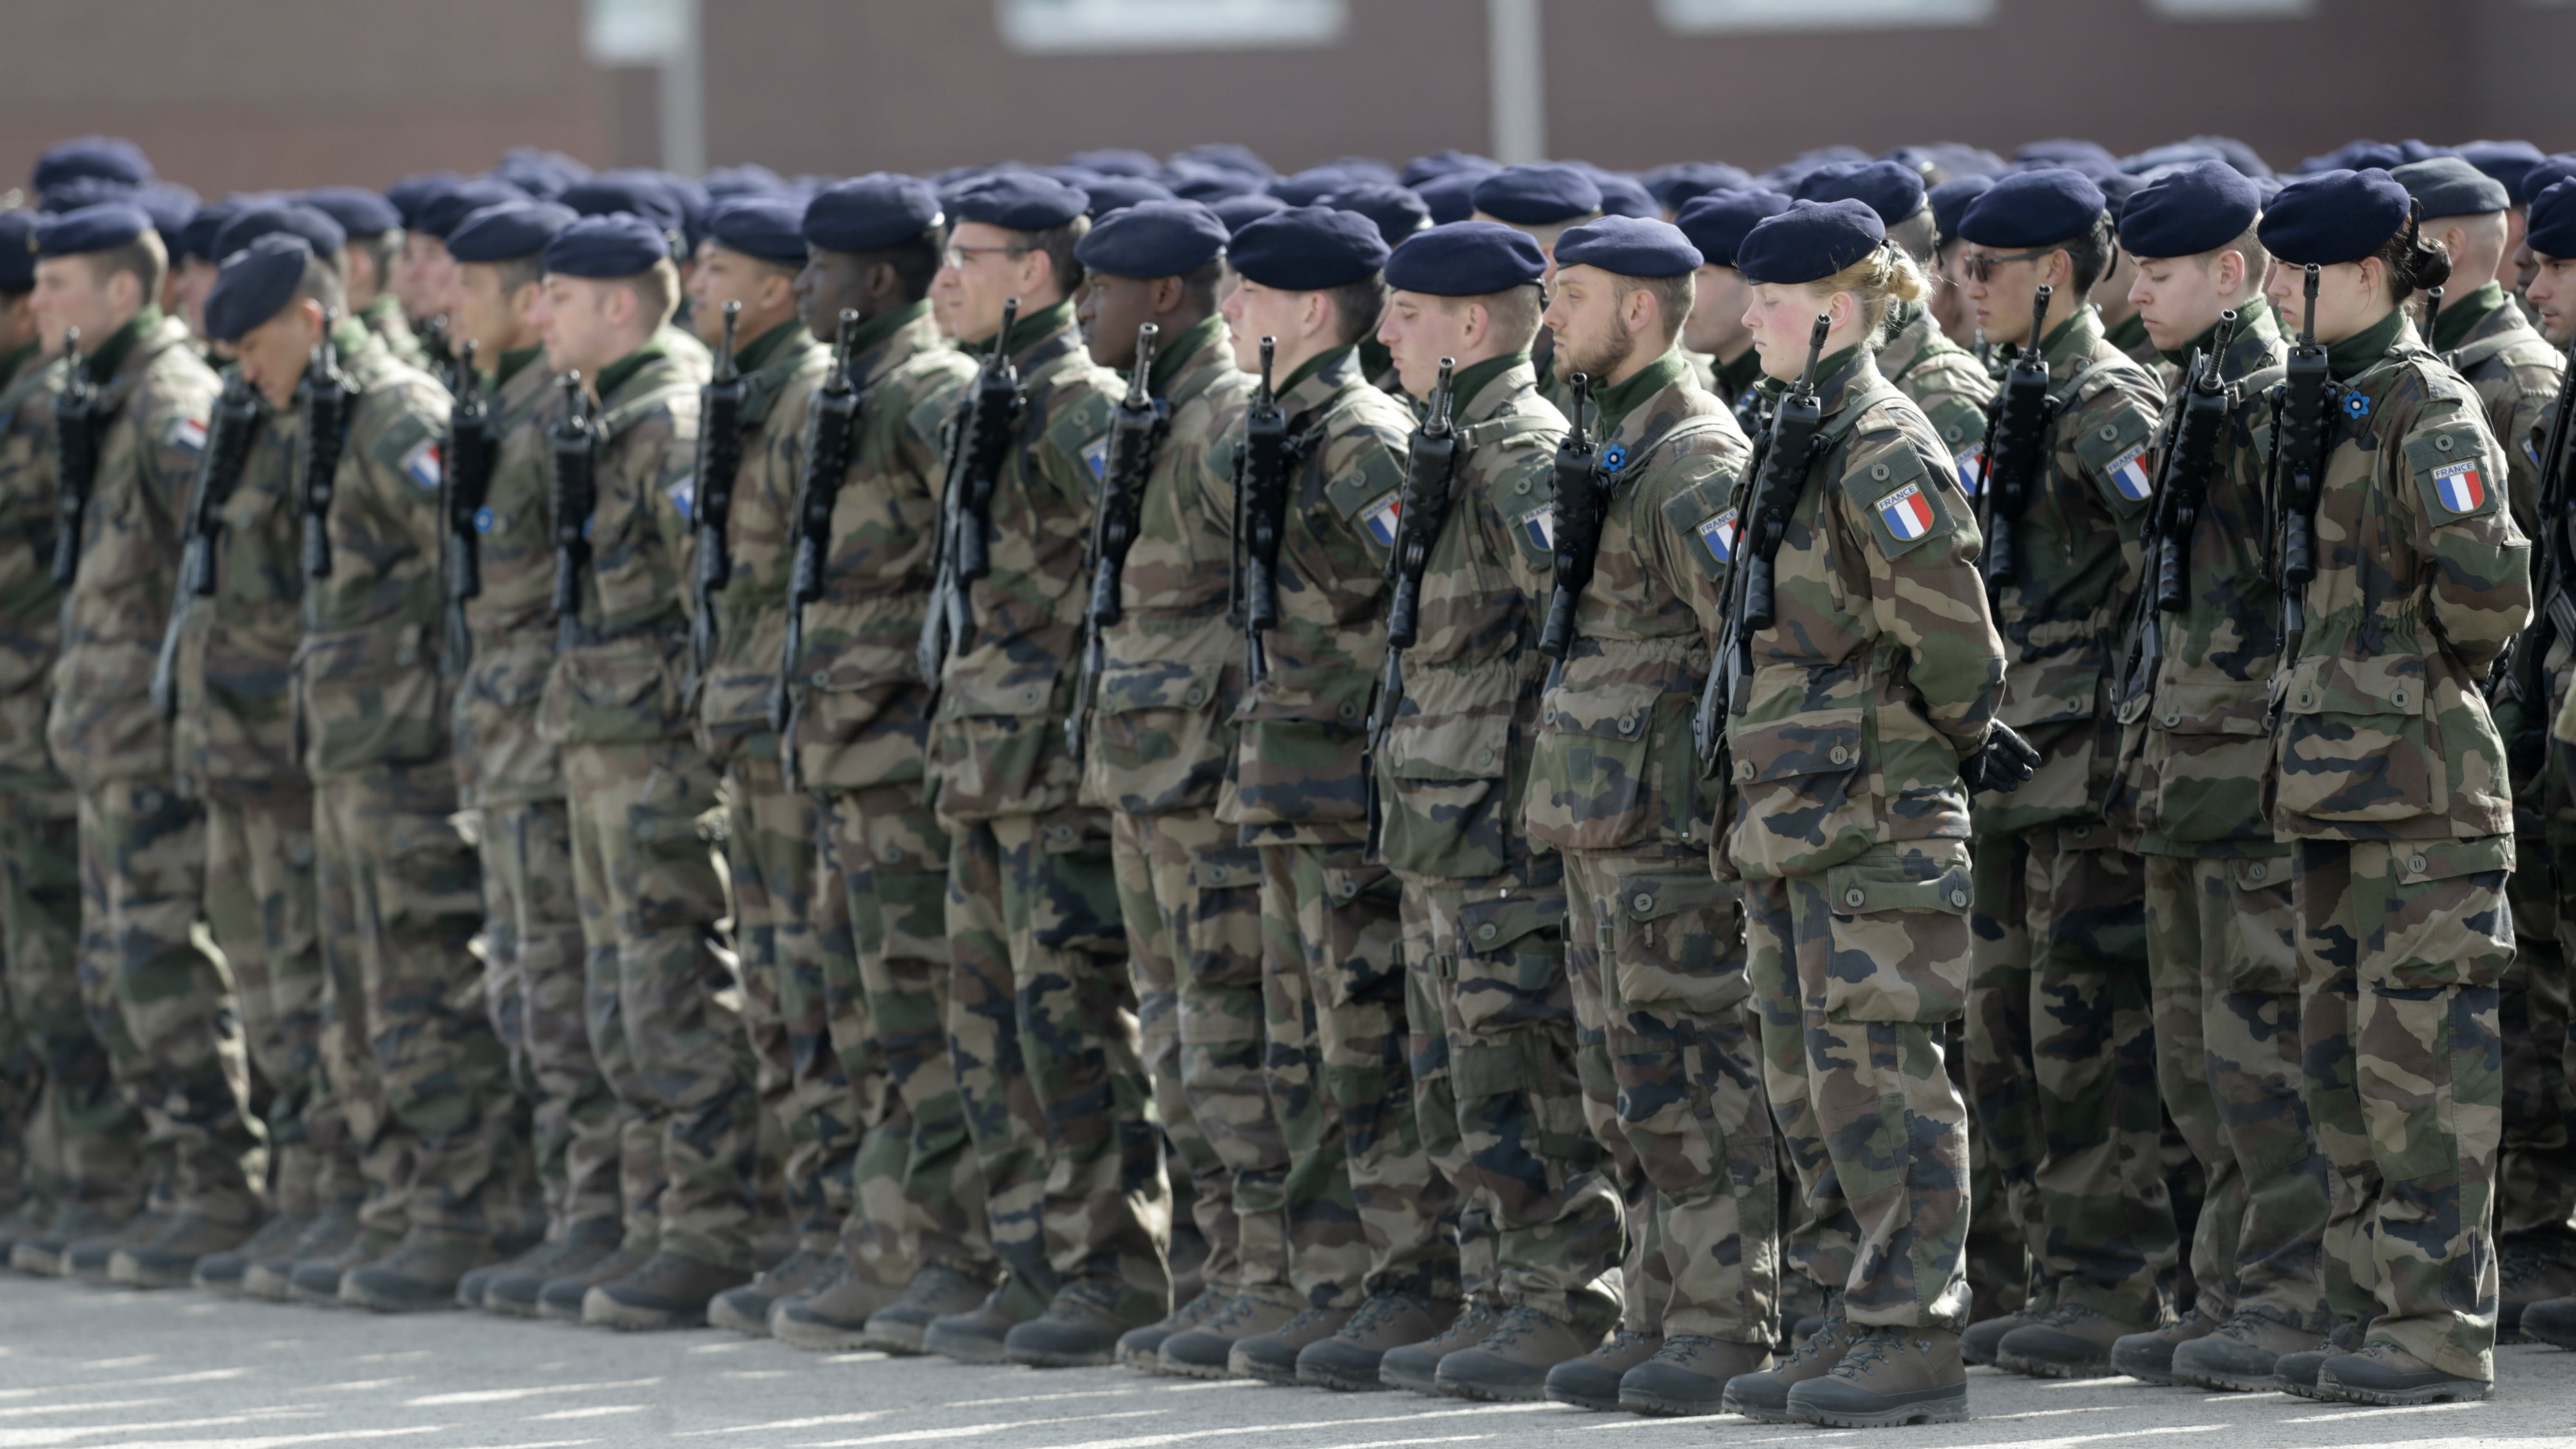 French soldiers standing in formation.